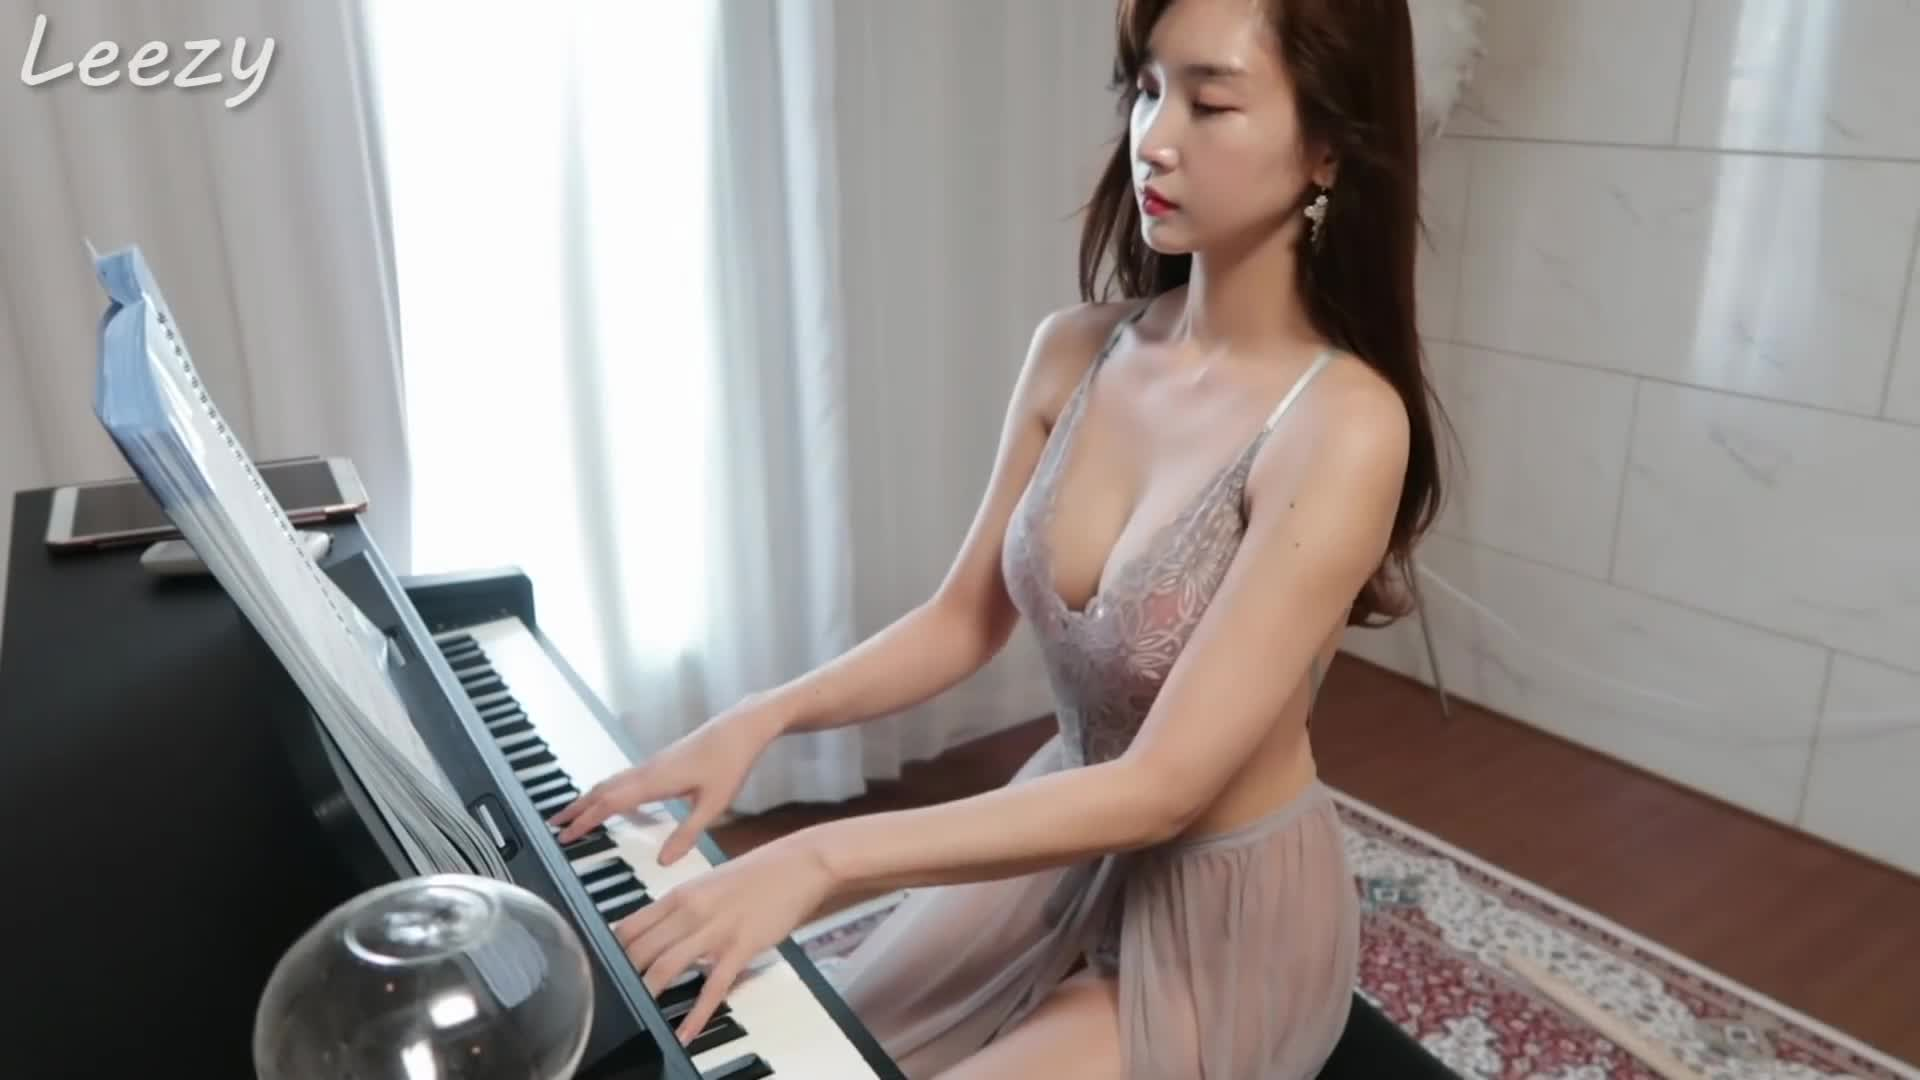 River flows in you - Yiruma | 이루마 piano cover ピアノ